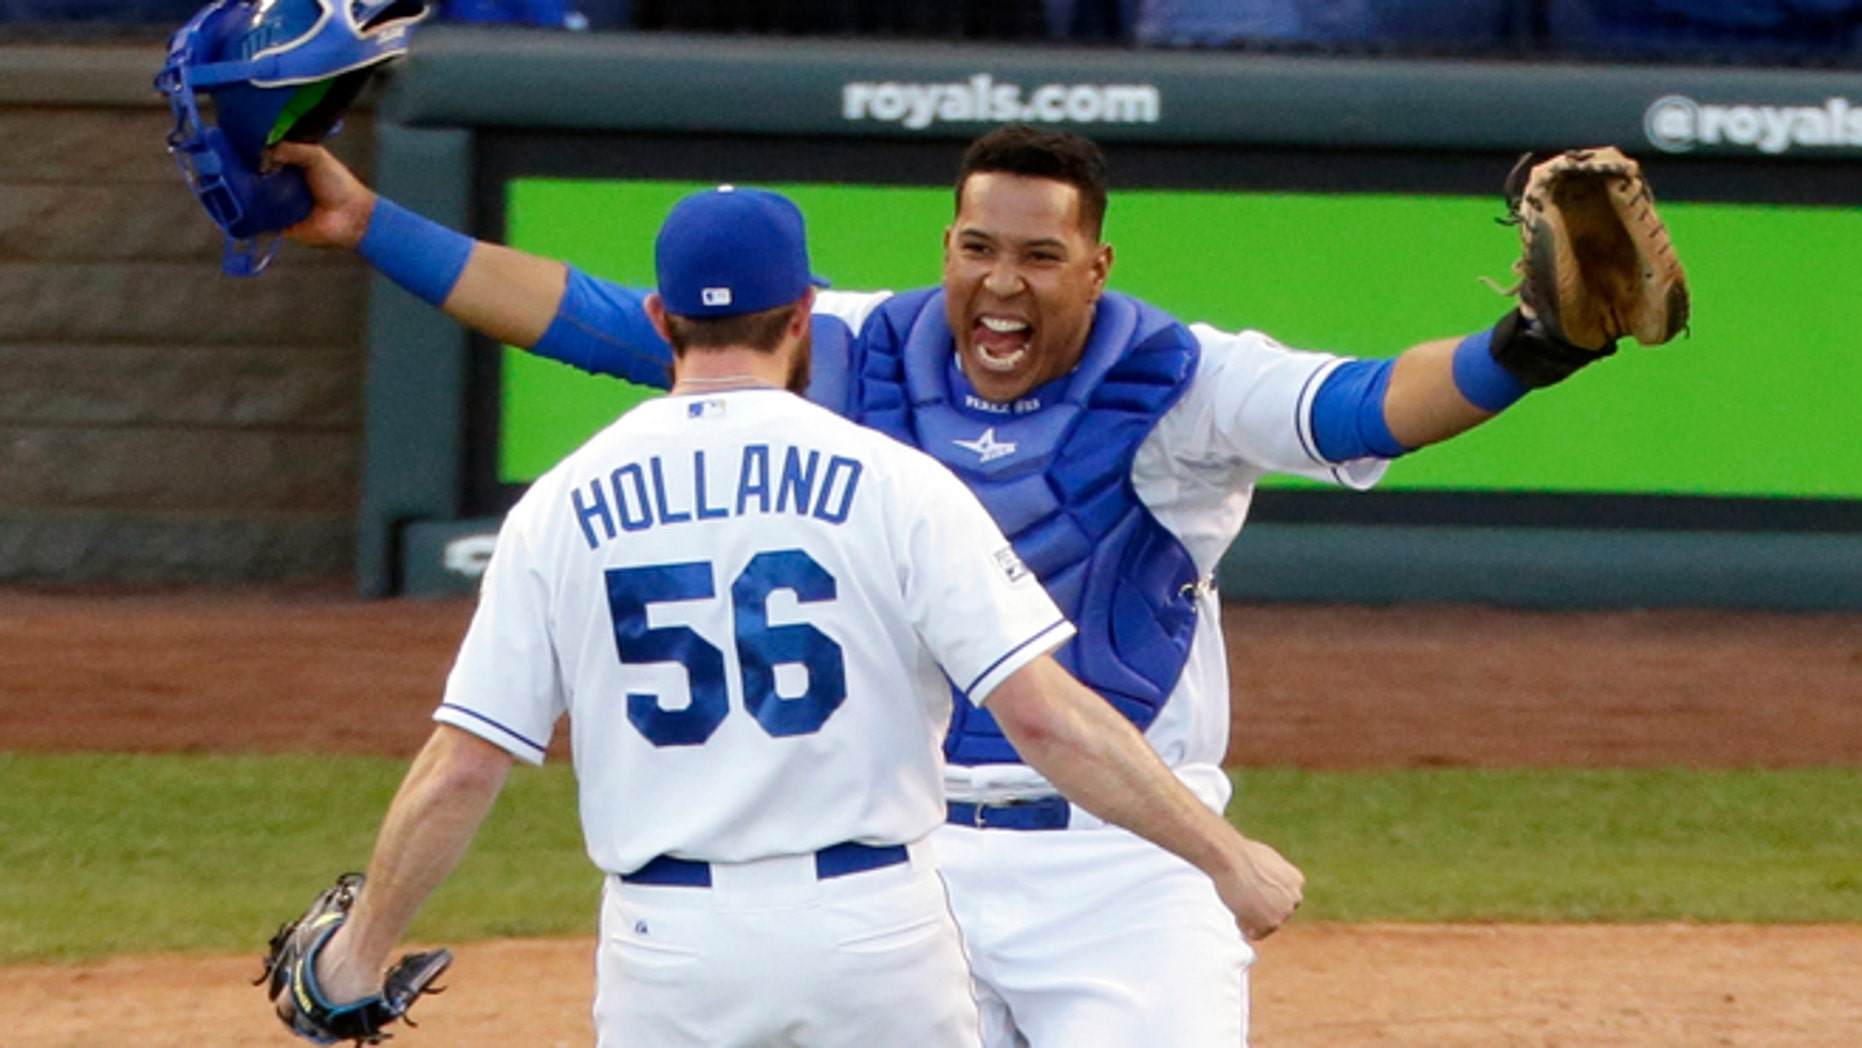 Kansas City Royals relief pitcher Greg Holland and catcher Salvador Perez celebrate after the Royals defeated the Baltimore Orioles 2-1 in Game 4 of the American League baseball championship series Wednesday, Oct. 15, 2014, in Kansas City, Mo. The Royals advance to the World Series. (AP Photo/Michael Conroy)